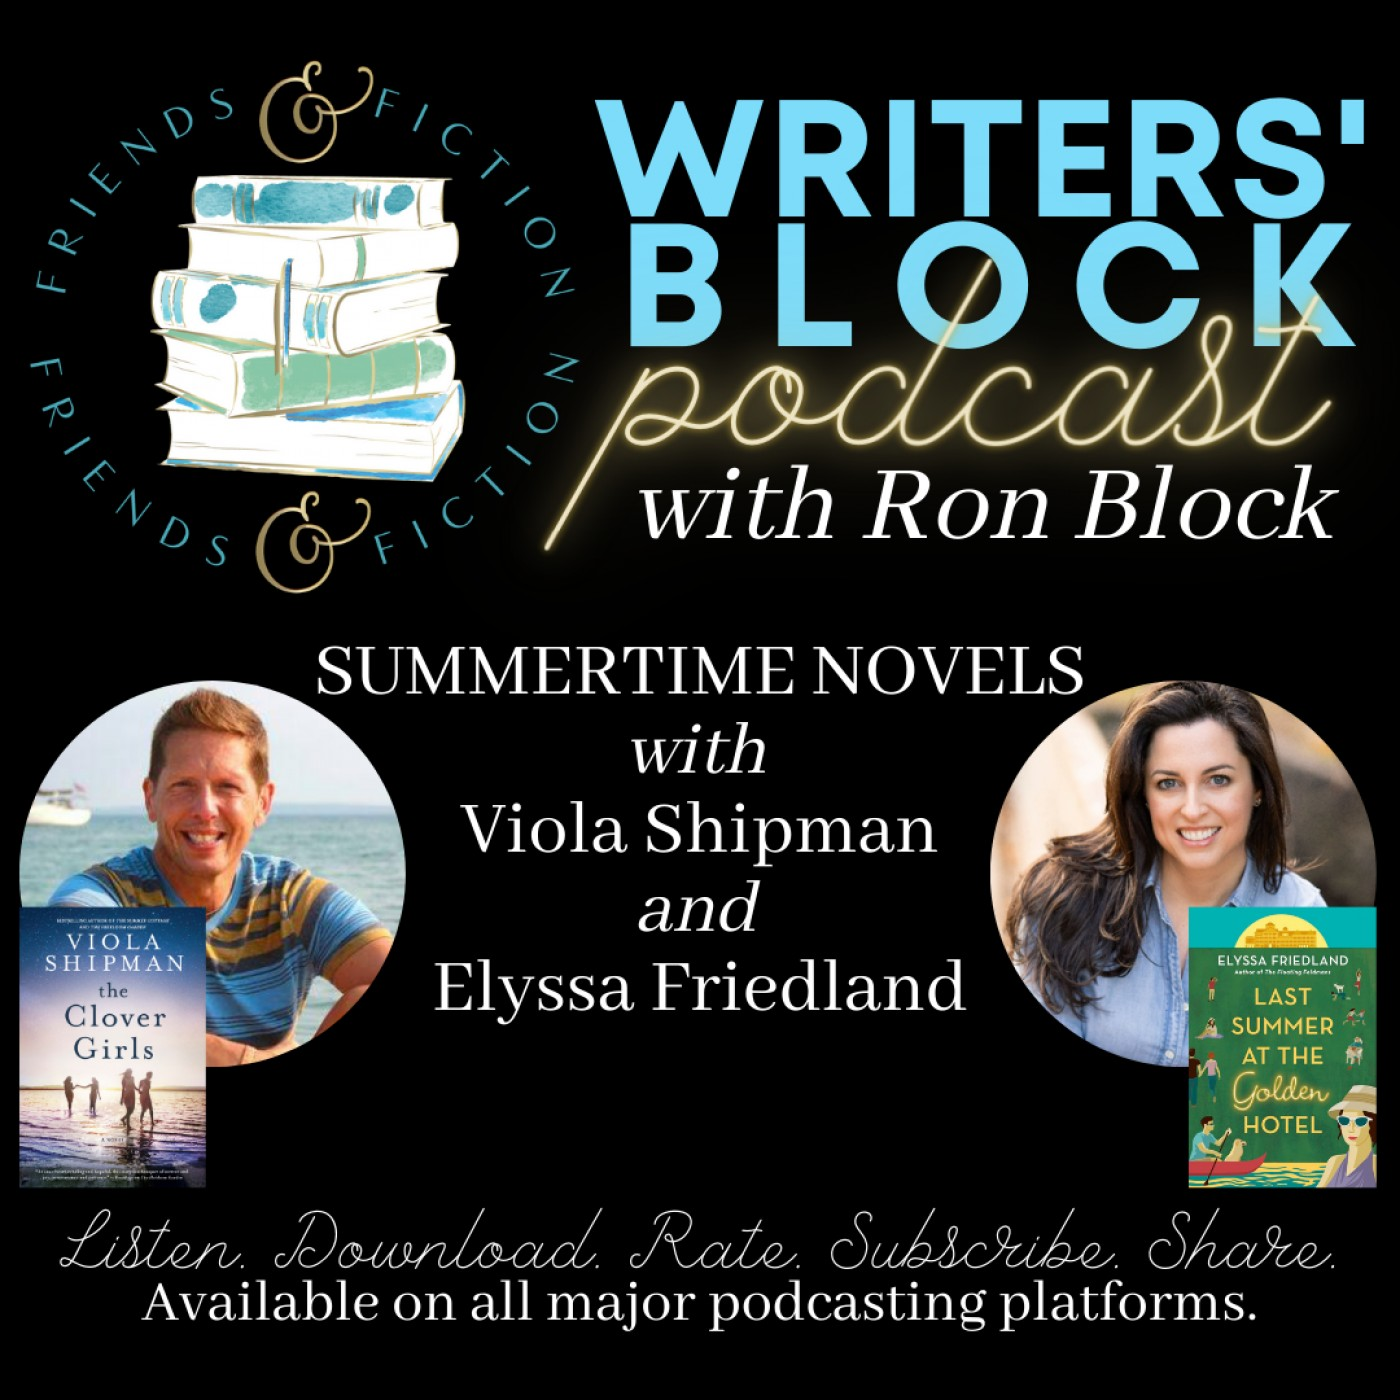 WB S1E1: Ron Block and Kristy Woodson Harvey with Wade Rouse and Elyssa Friedland